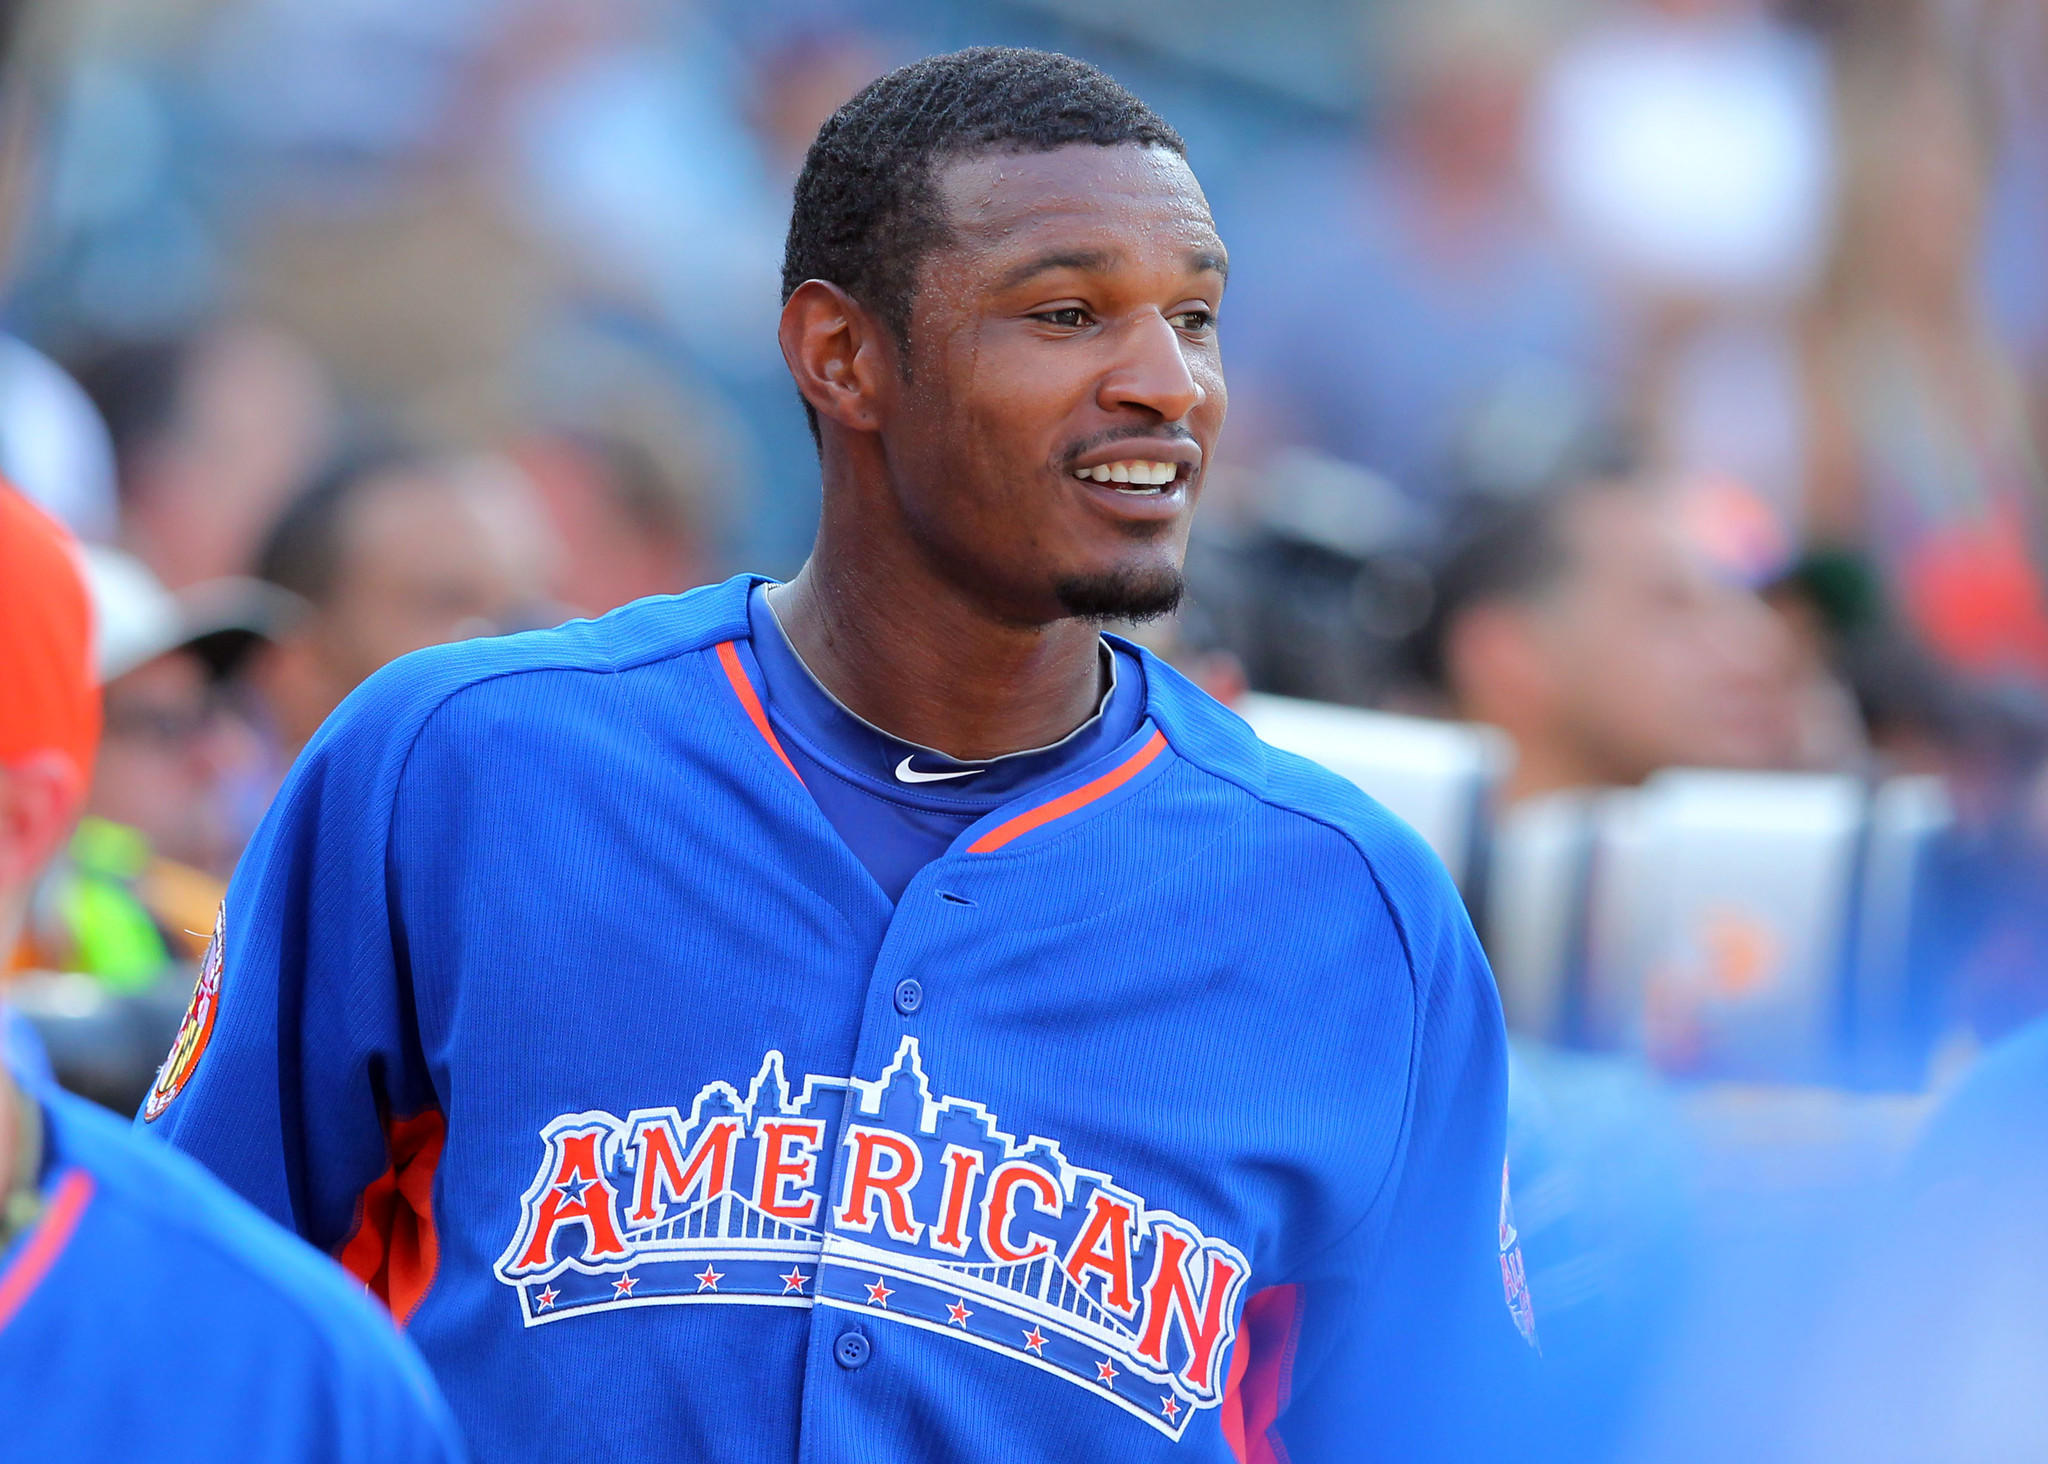 Adam Jones represented the American League at last year's All-Star Game in New York, but he appears to be on the bubble for selection to this year's Midsummer Classic in Minnesota.